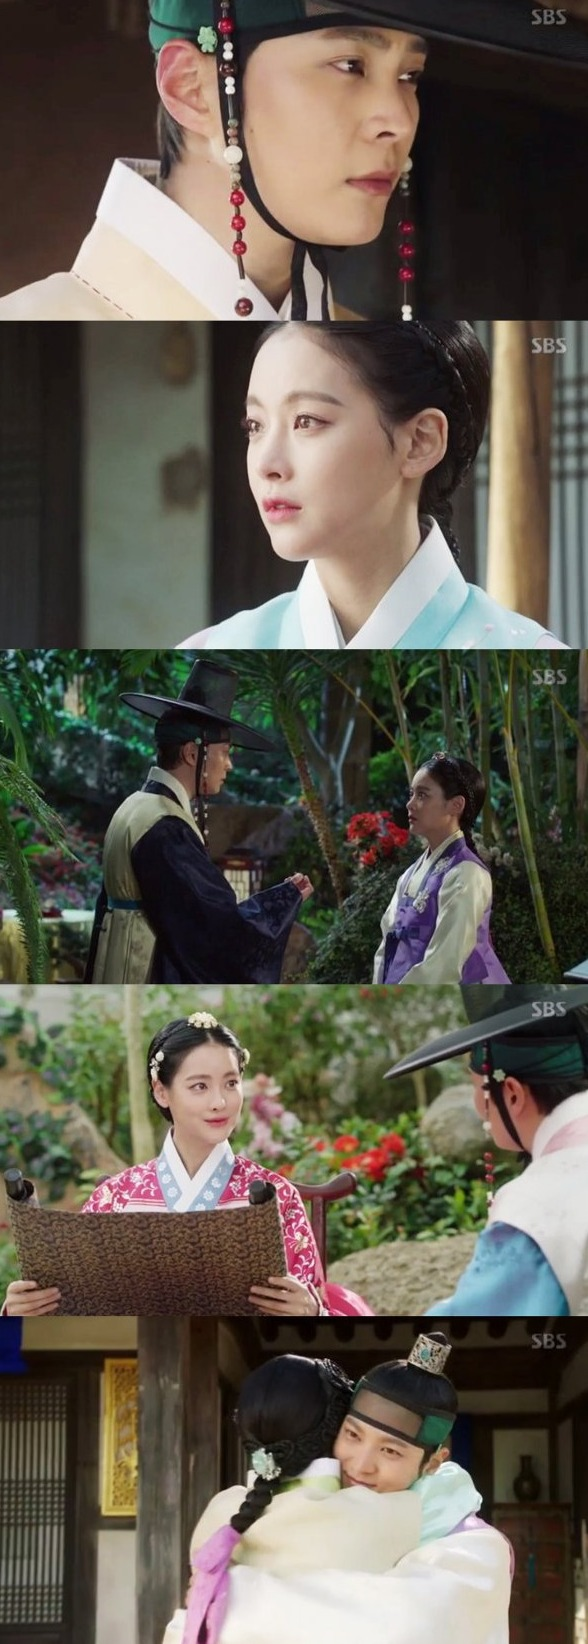 [Spoiler] Added final episodes 31 and 32 captures for the Korean drama 'My Sassy Girl - Drama'